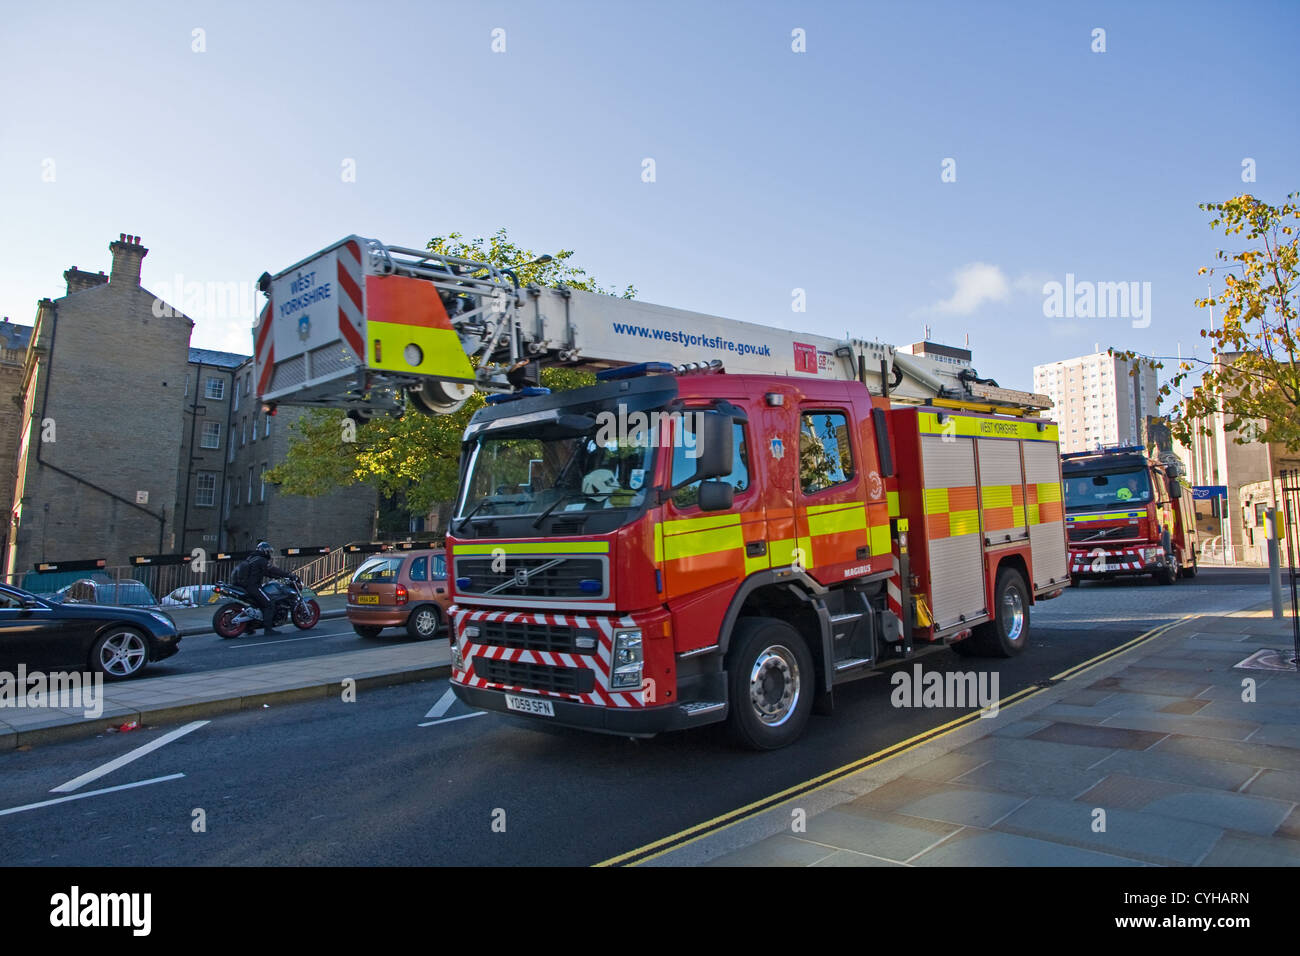 Fire Service elevating platform being followed by fire engine - Stock Image